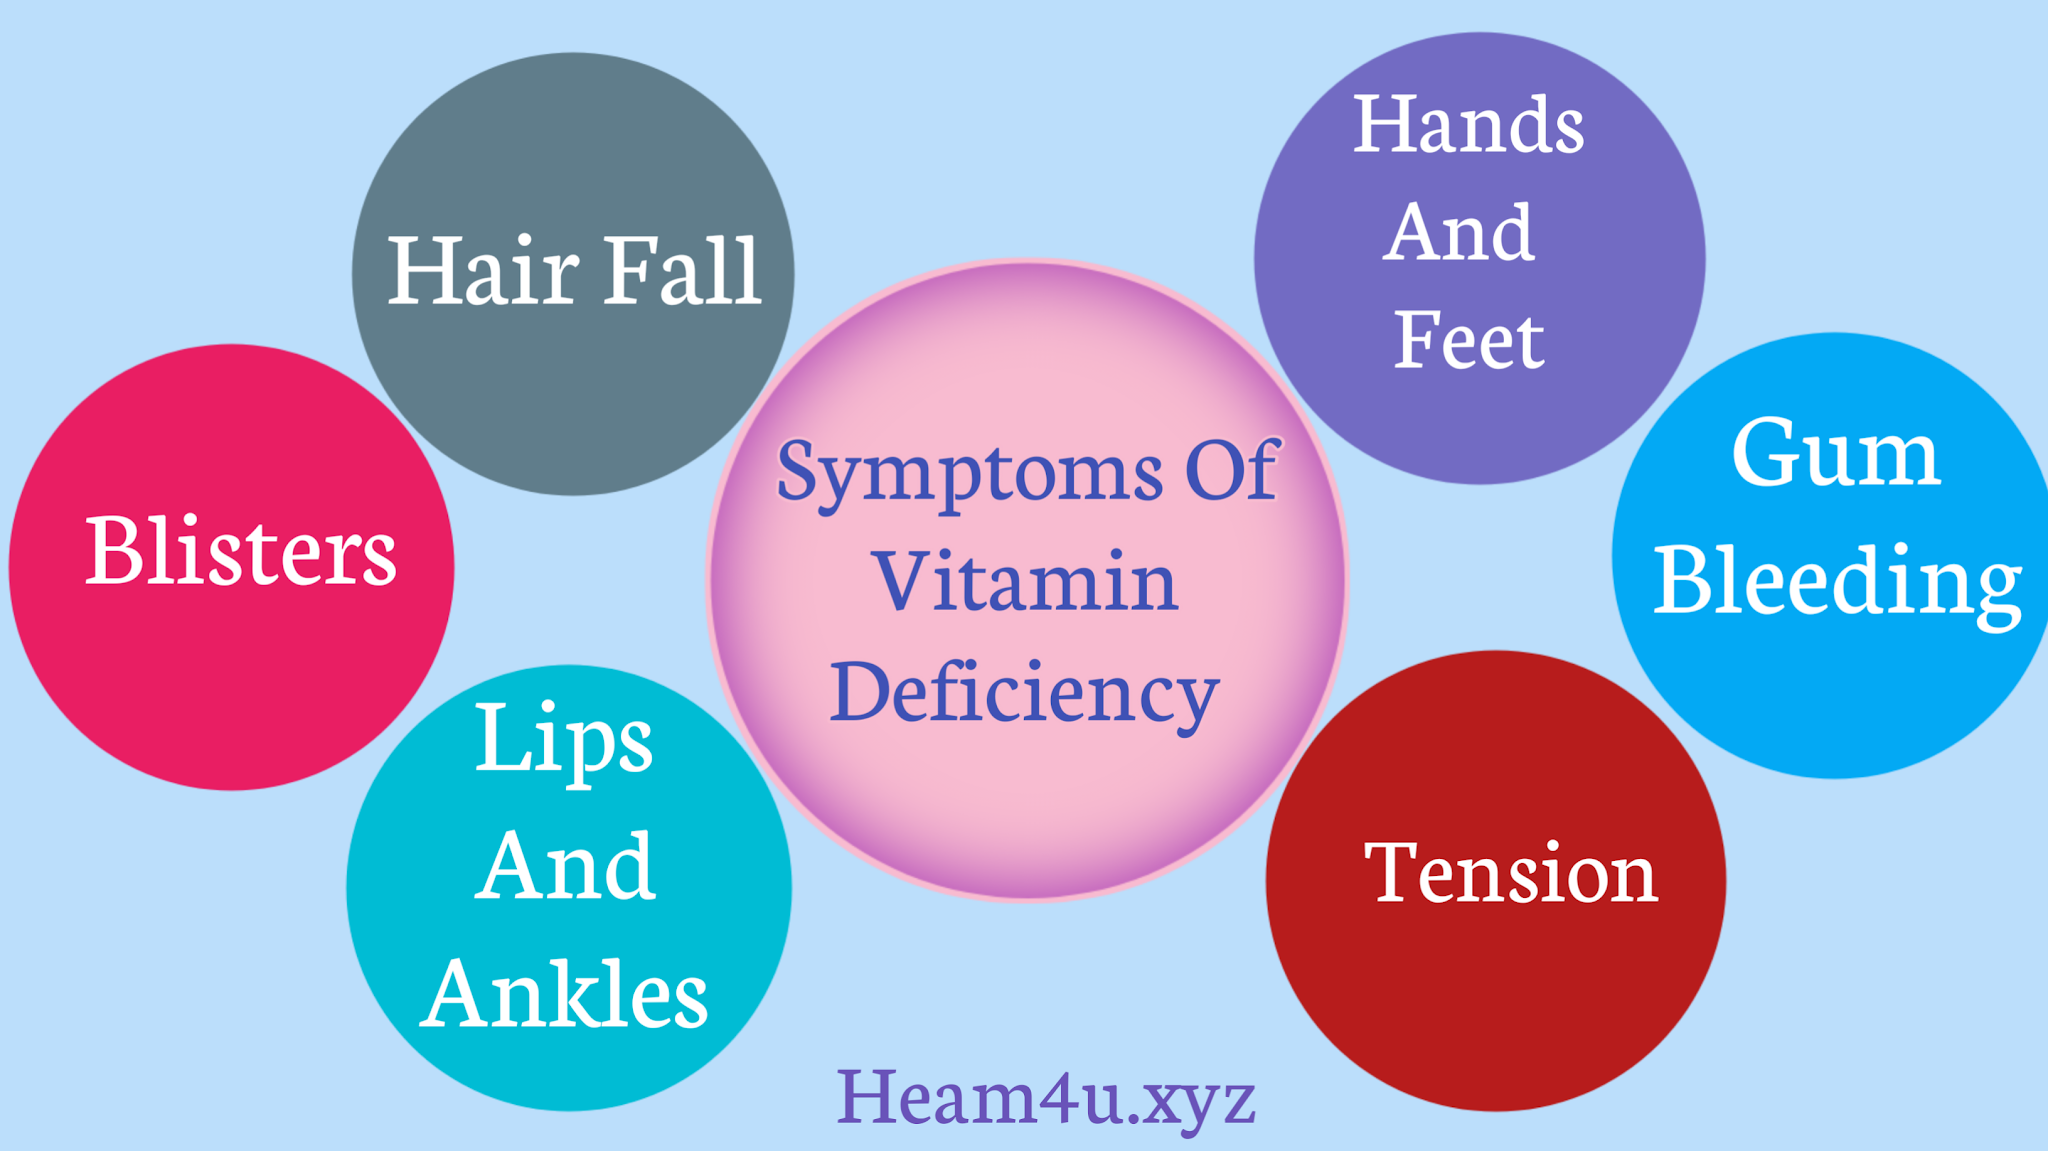 Vitamin Deficiency || Deficiency Chart Of Vitamins And Vitamins Deficiency Symptoms 2021